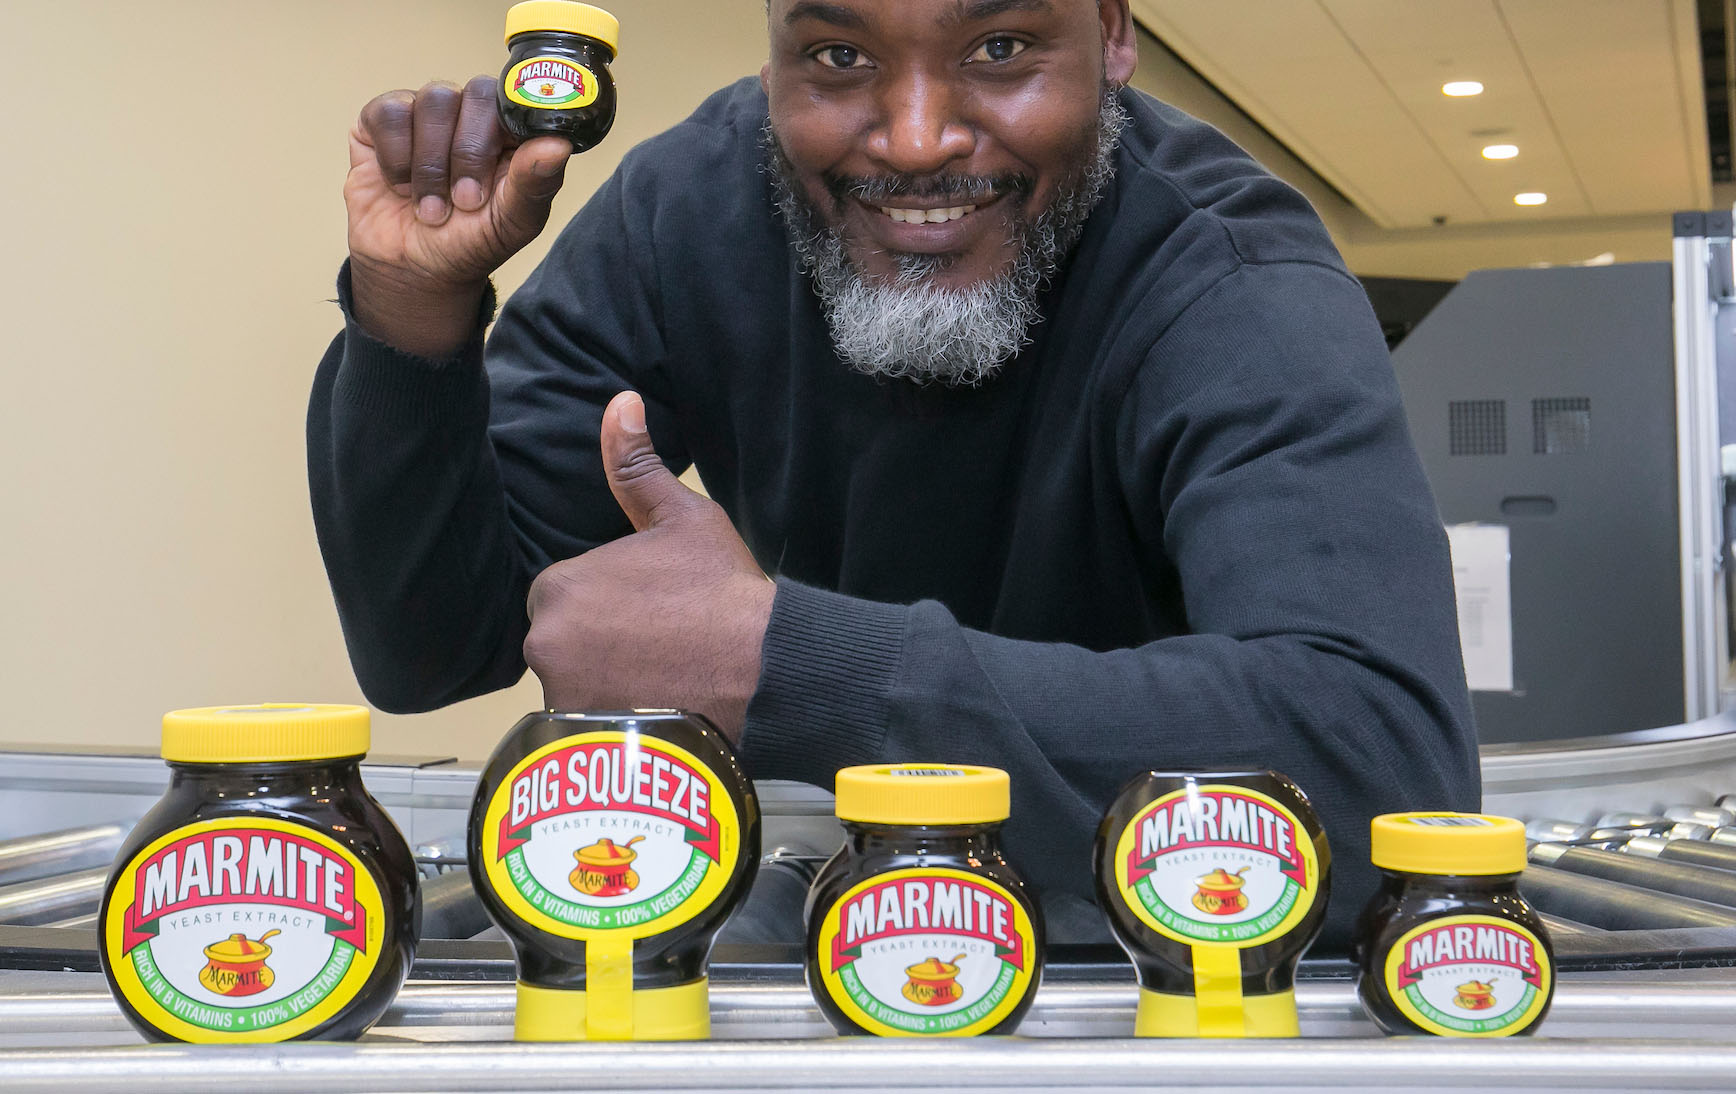 Marmite confiscated by security